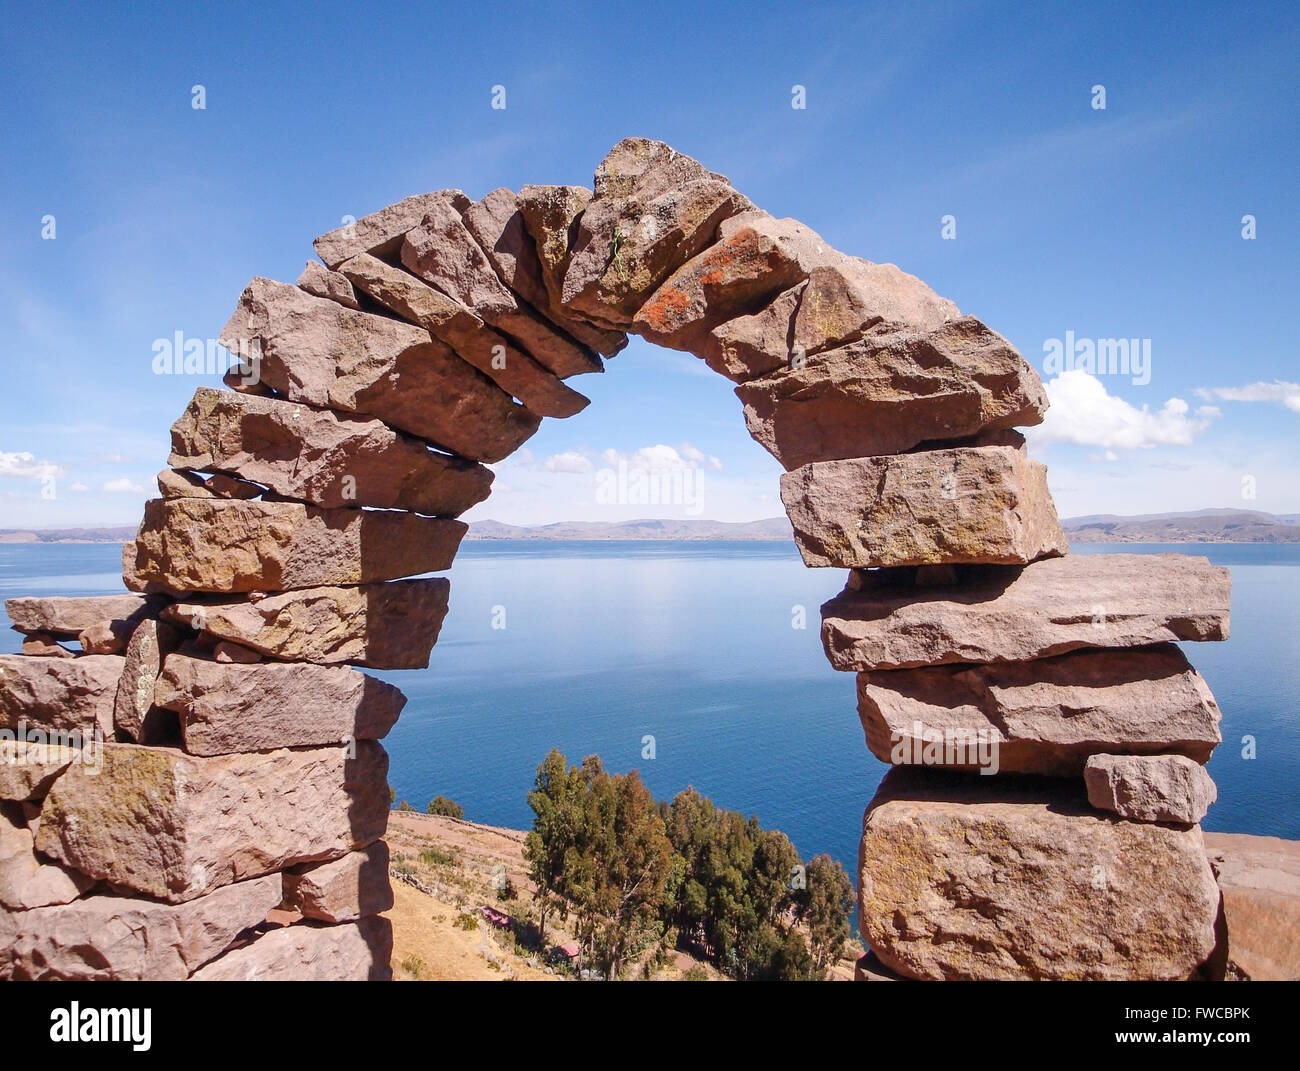 andes scenery with arch made of stone at Lake Titicaca in Peru (South America) - Stock Image